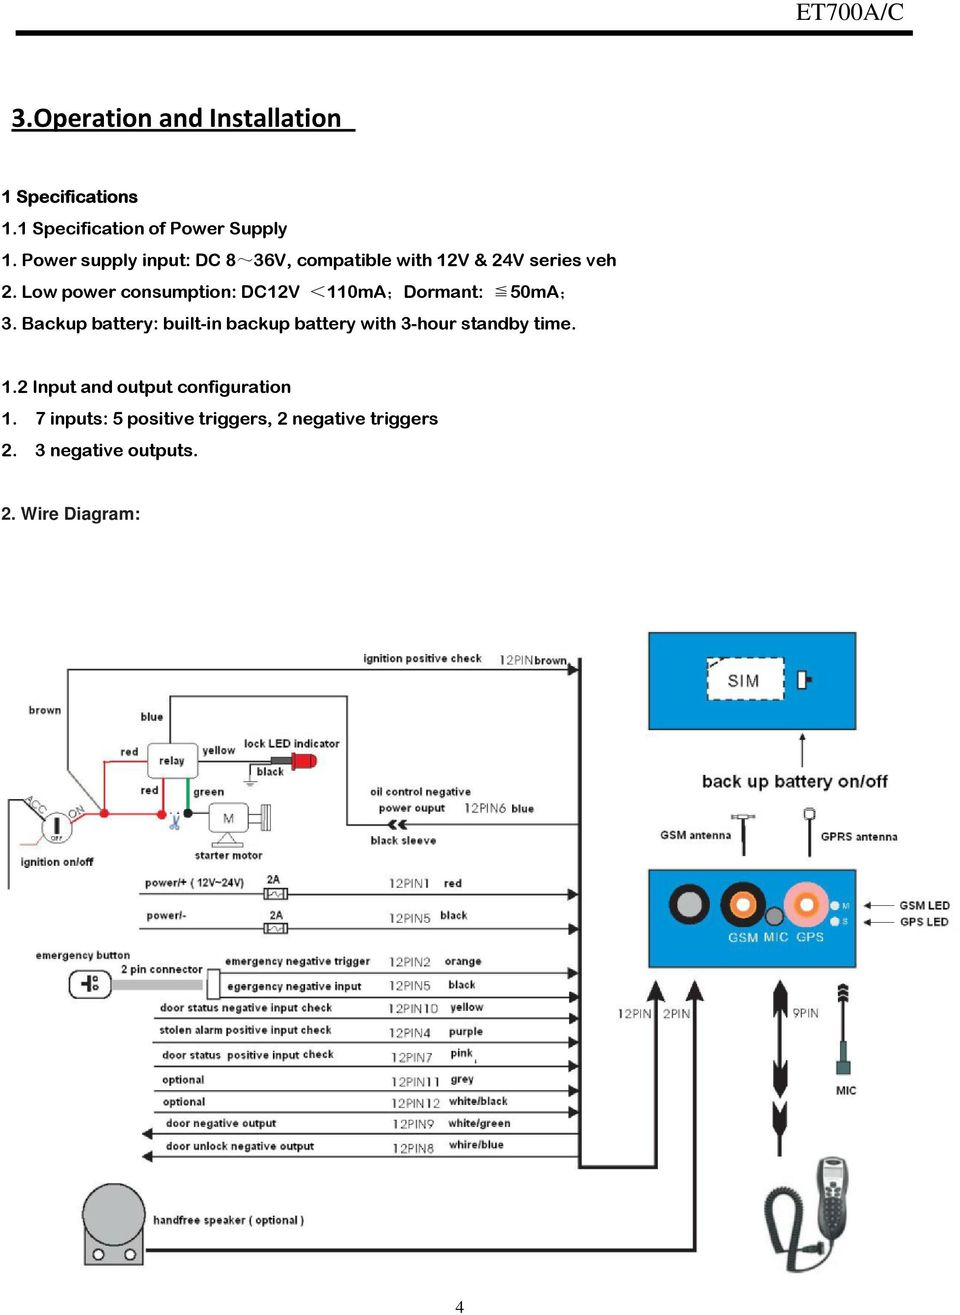 medium resolution of wire diagram 4 low power consumption dc12v 110ma dormant 50ma